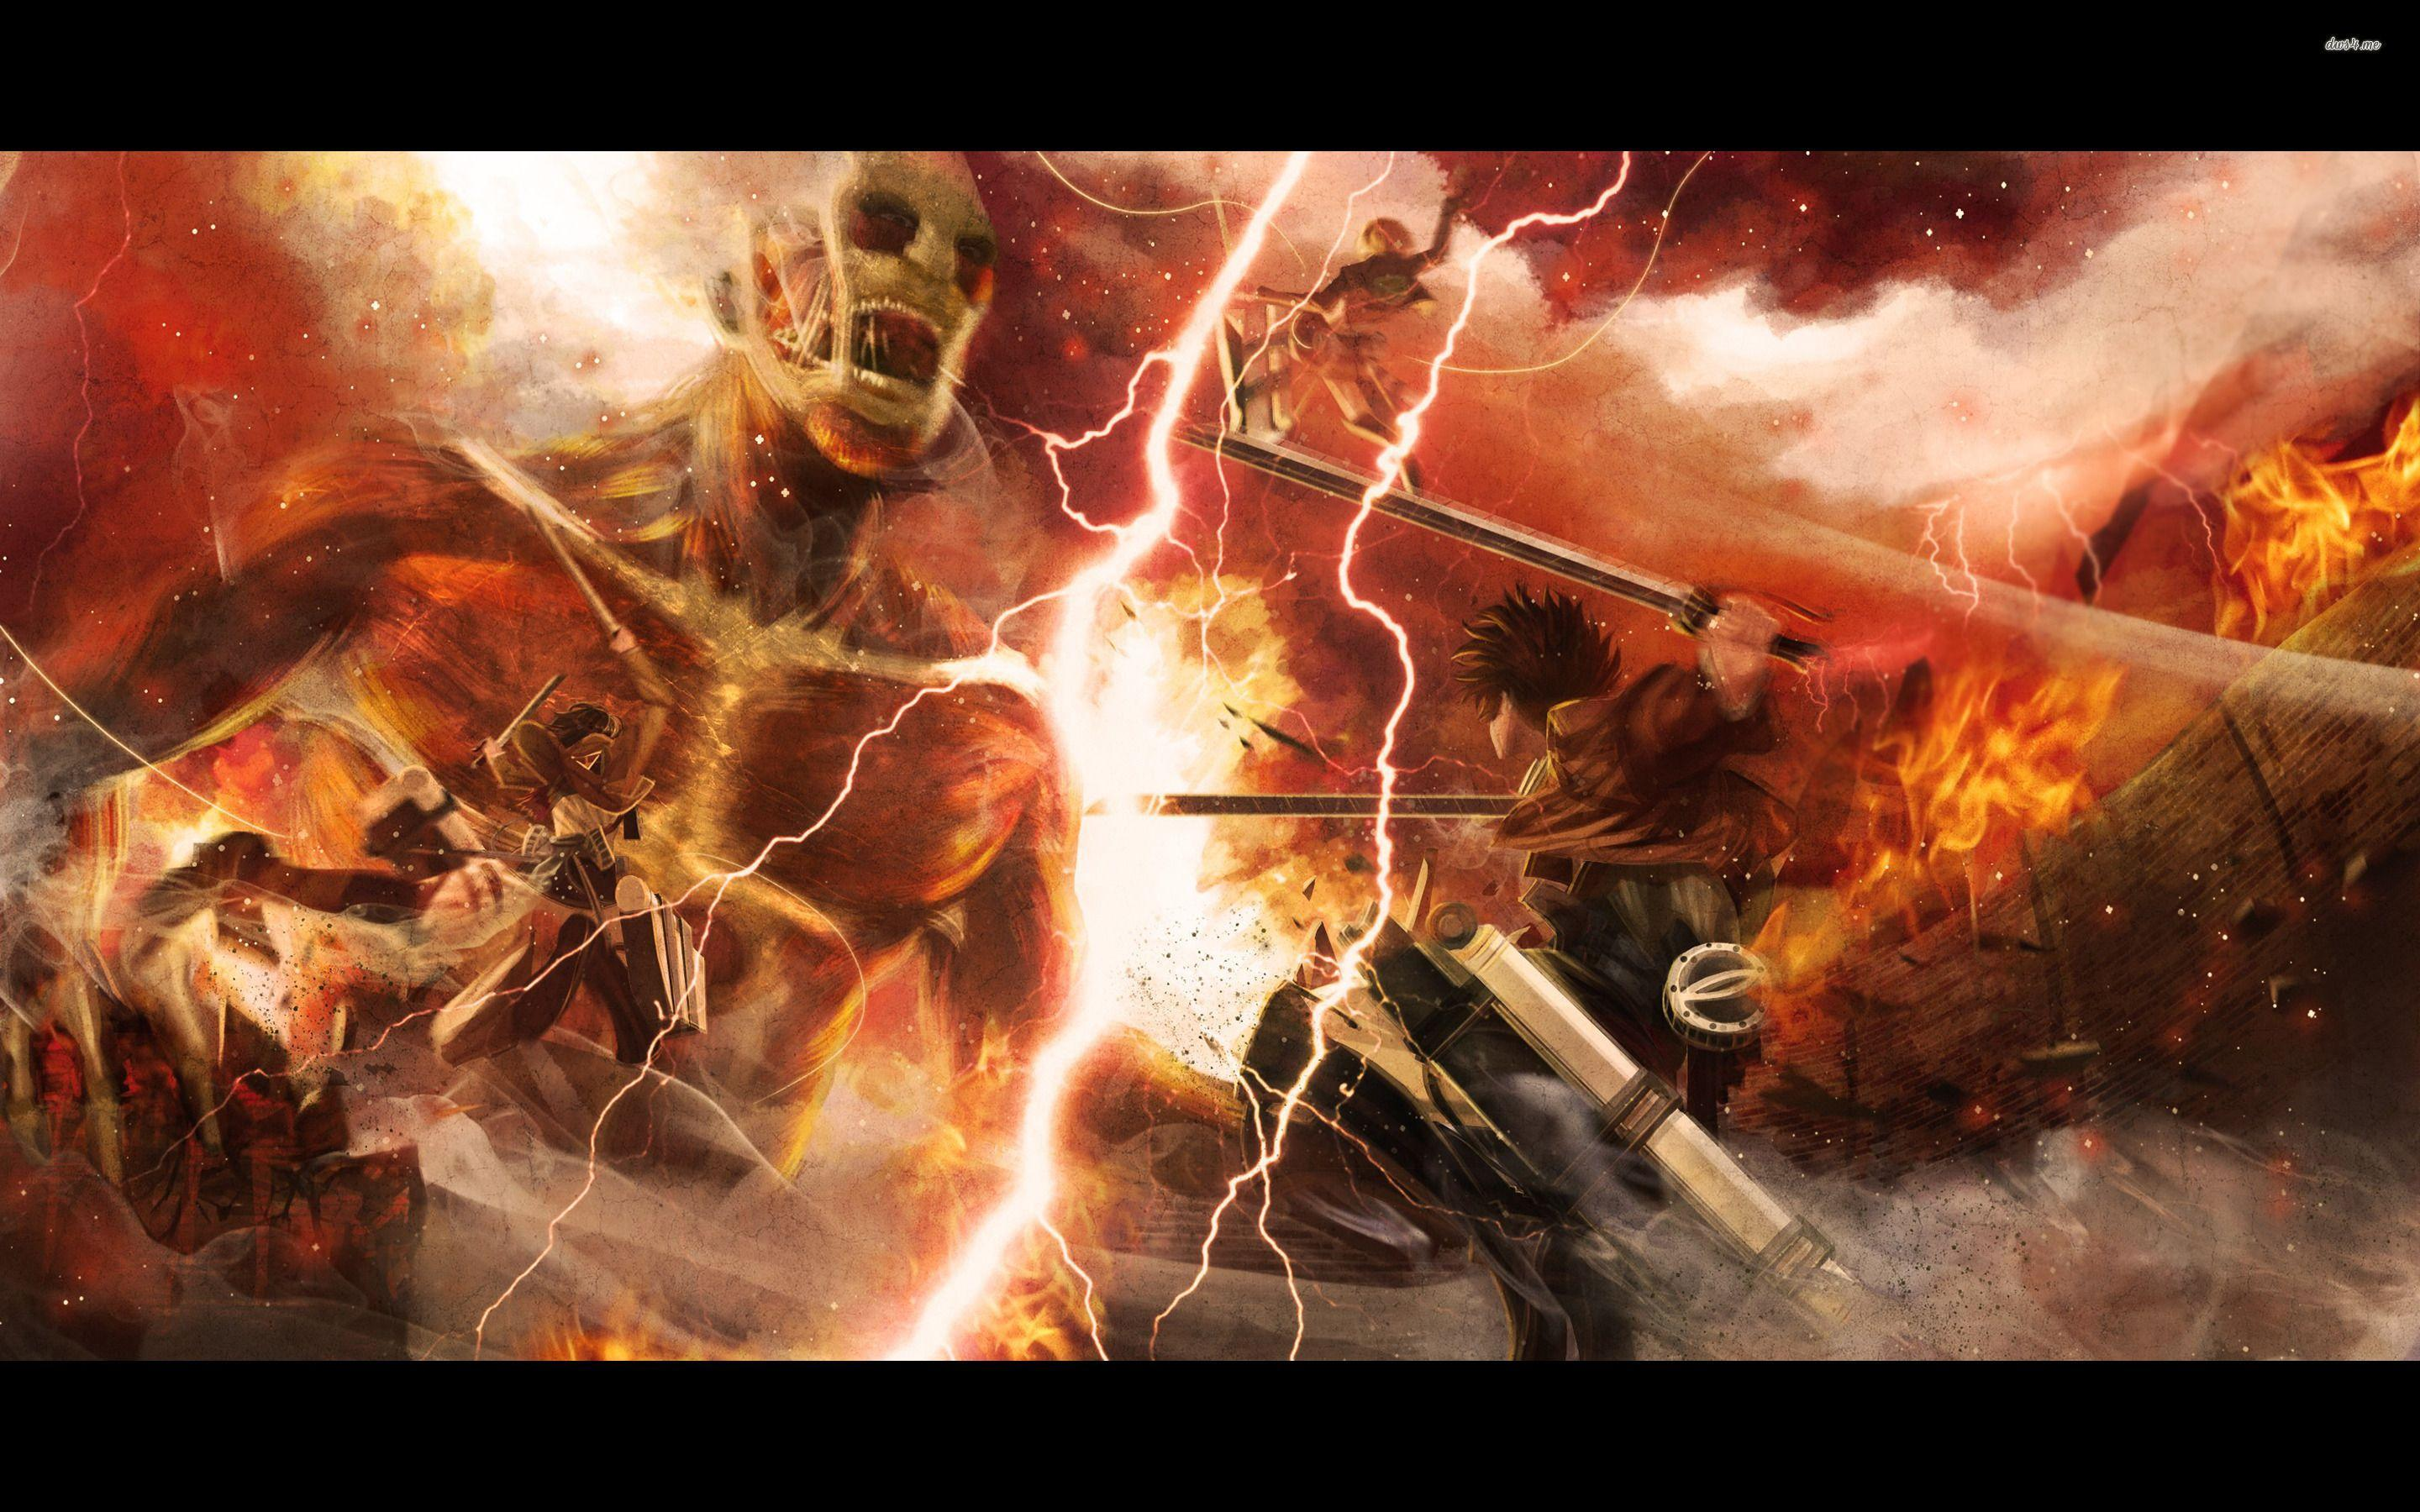 Great Wallpaper High Quality Attack On Titan - wp2123915  Collection_715852.jpg